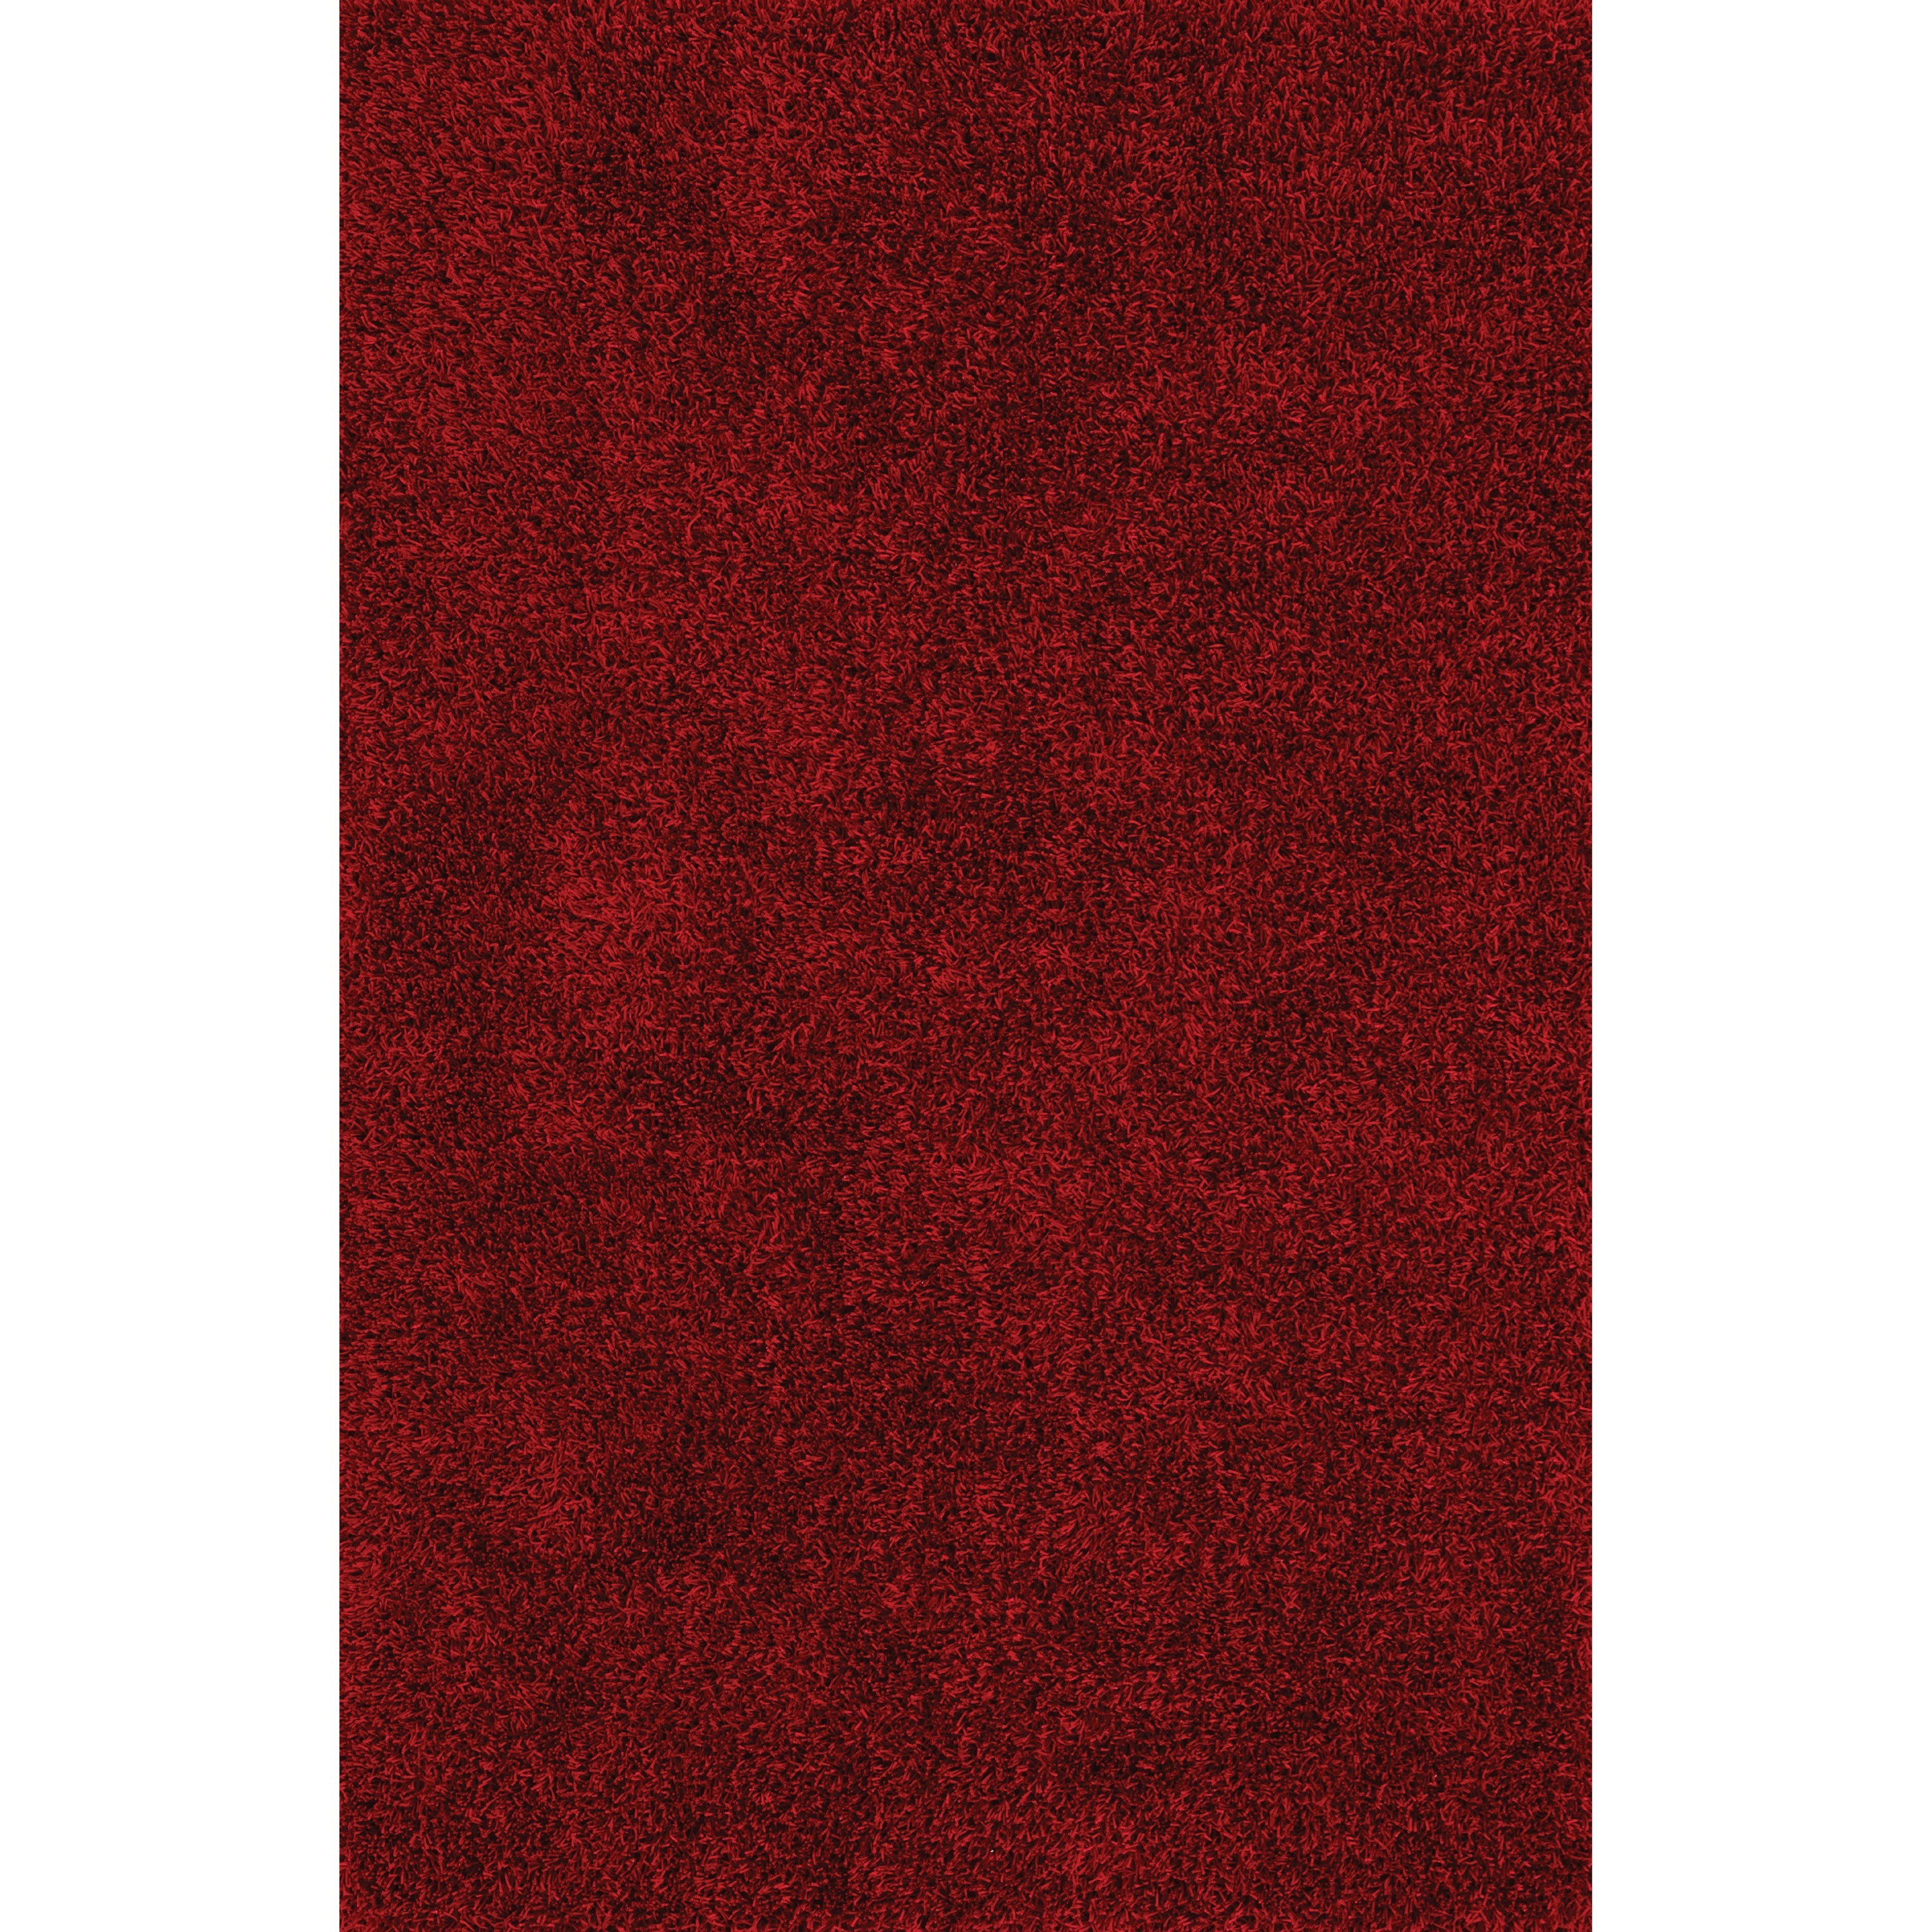 Dalyn Illusions Red 9'X13' Rug - Item Number: IL69RD9X13